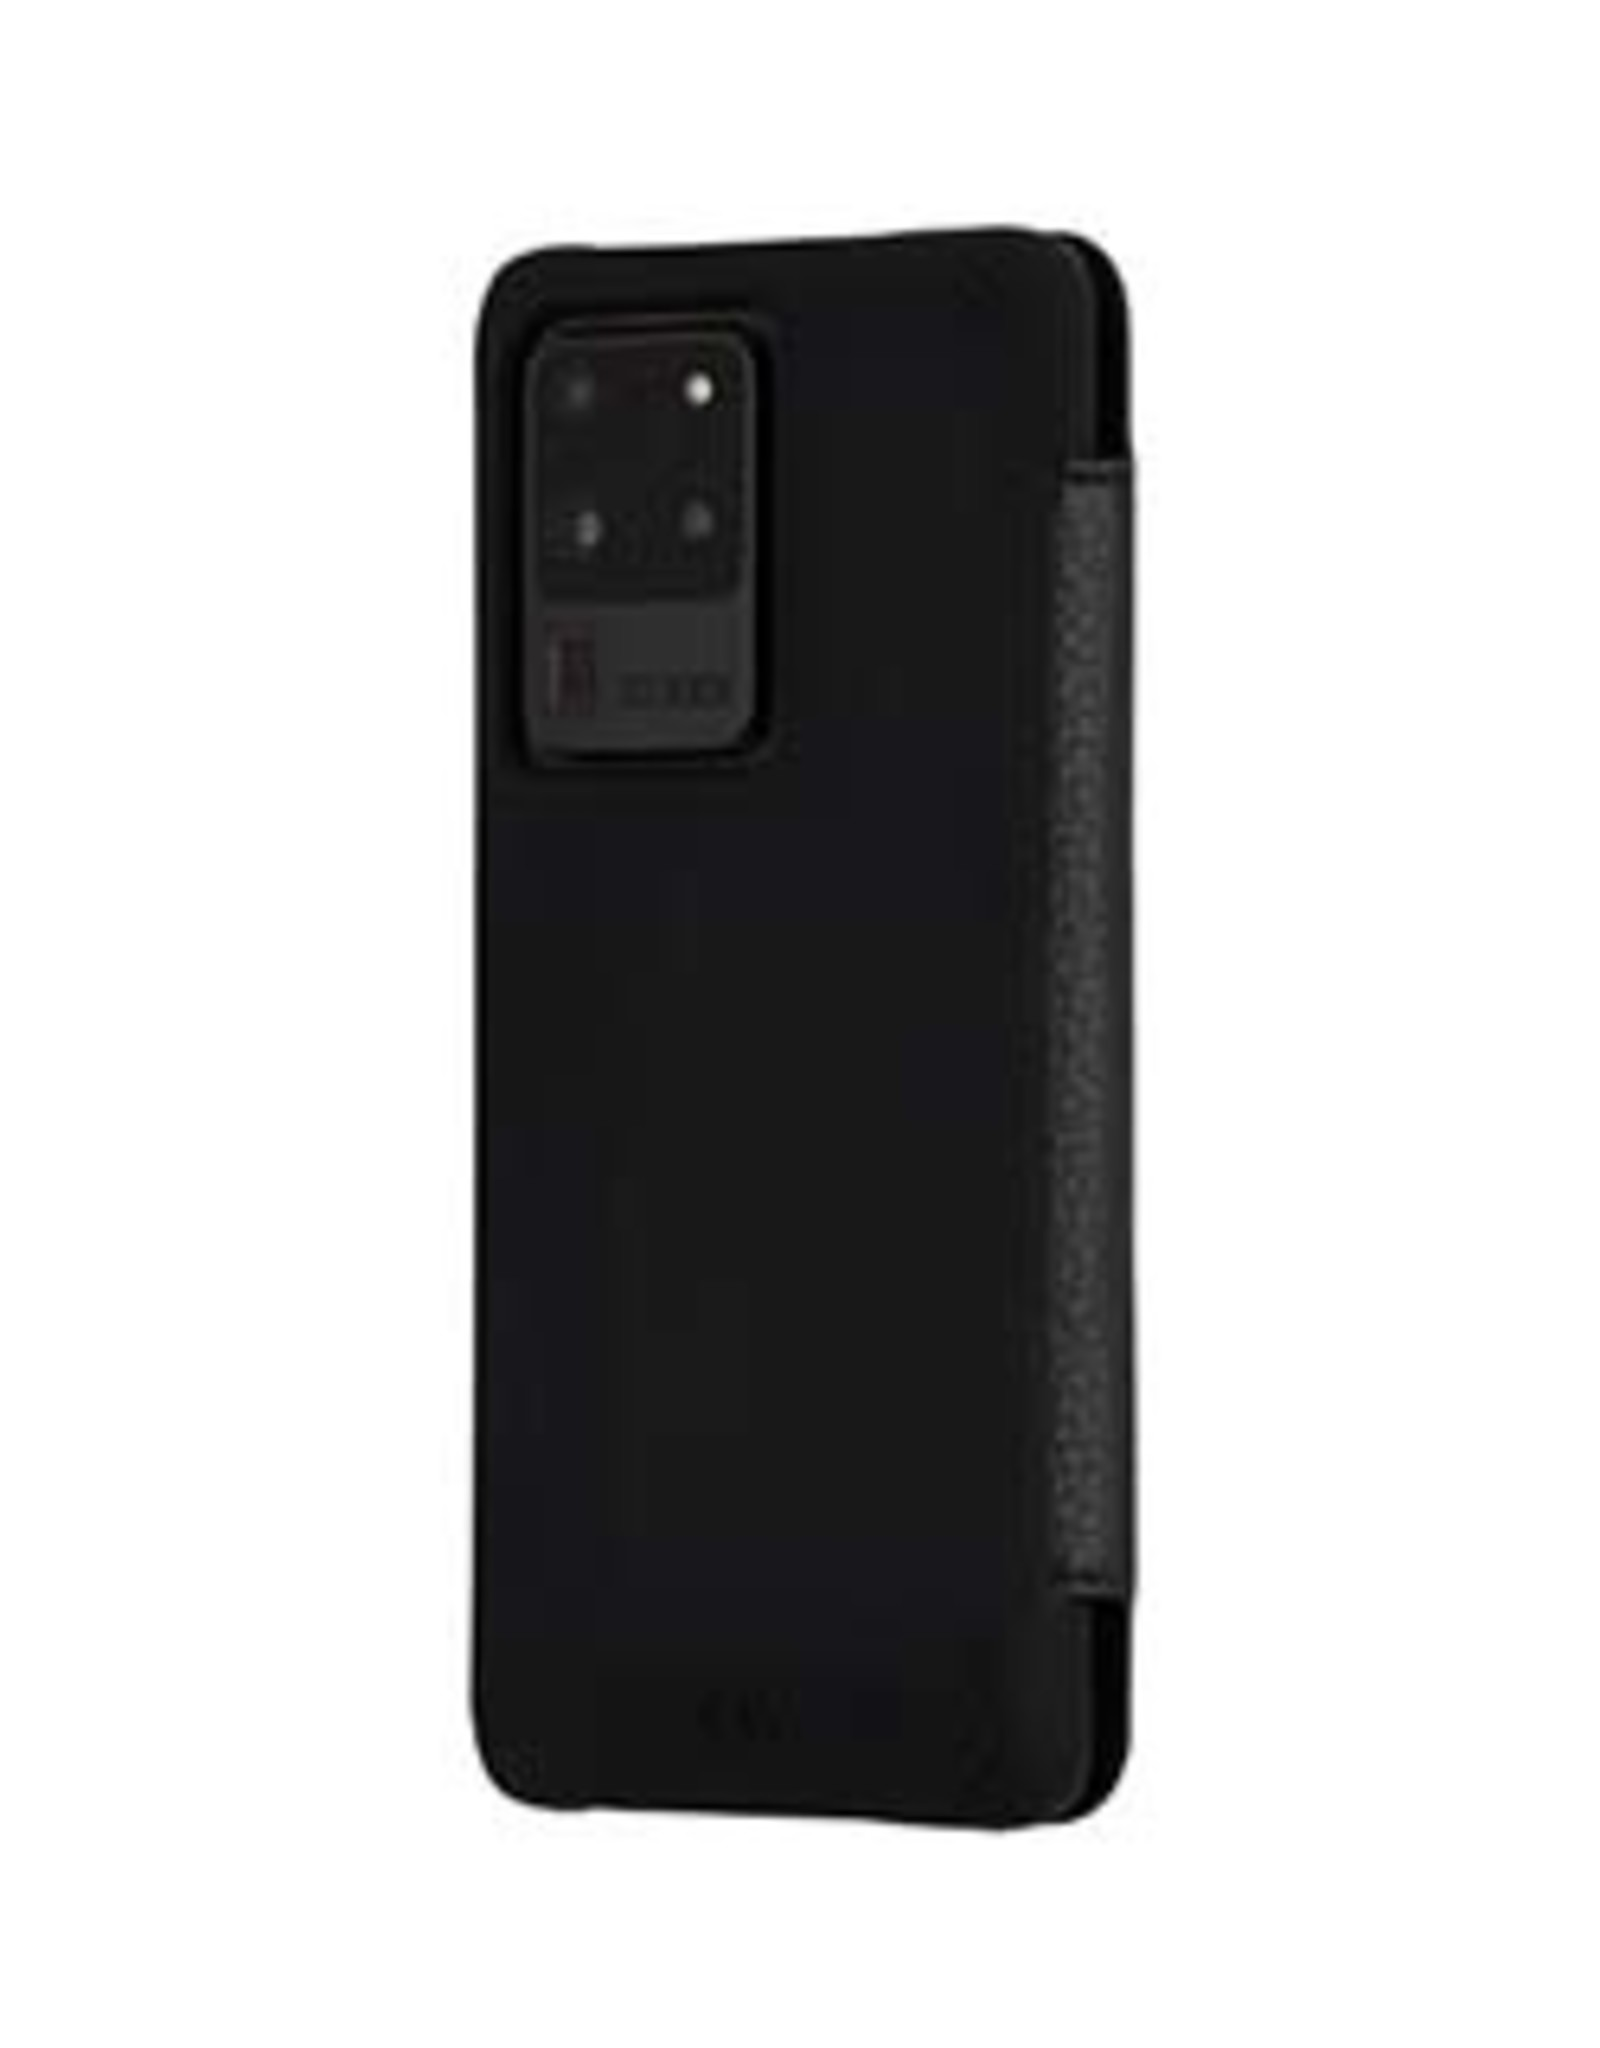 Case-Mate Case-Mate | Samsung Galaxy S20 Ultra  Black Pebbled Leather Wallet Folio Case15-06677